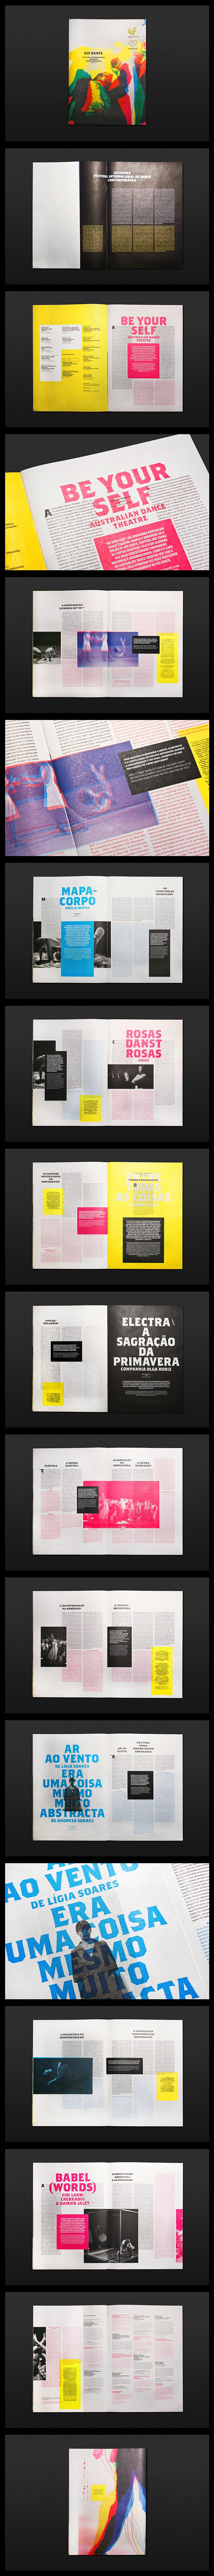 GUIDANCE 2011 Festival Internacional de Dança Contemporânea ~ Poster and Journals designed for the contemporary dance festival hosted at the CCVF Guimarães. (Atelier Martinoña; Porto, Portugal)